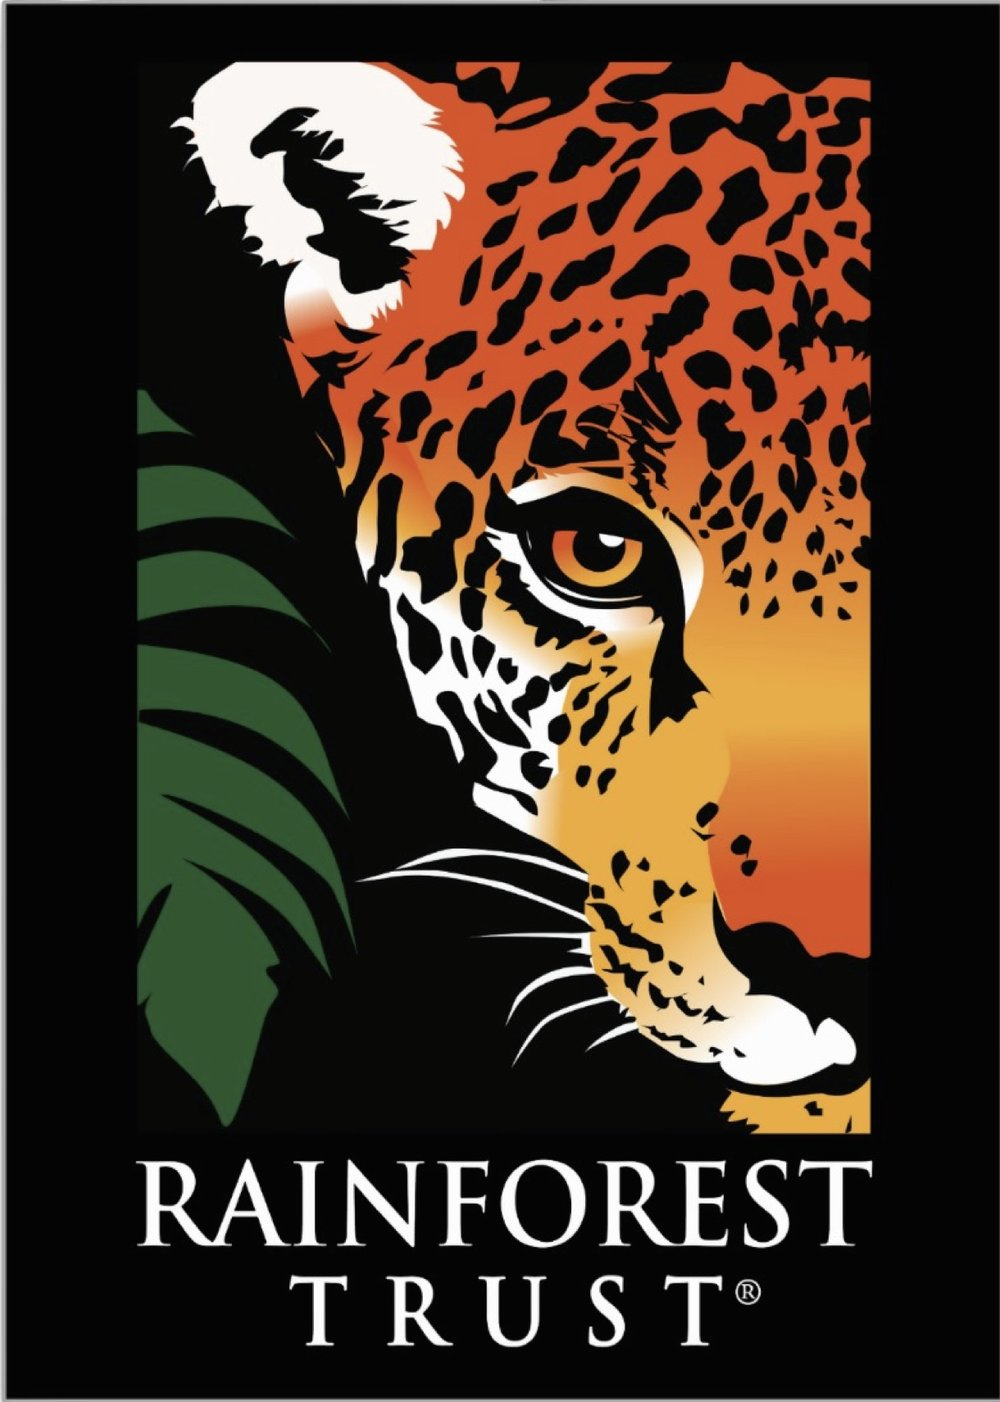 rainforest_trust_logo copy.jpg